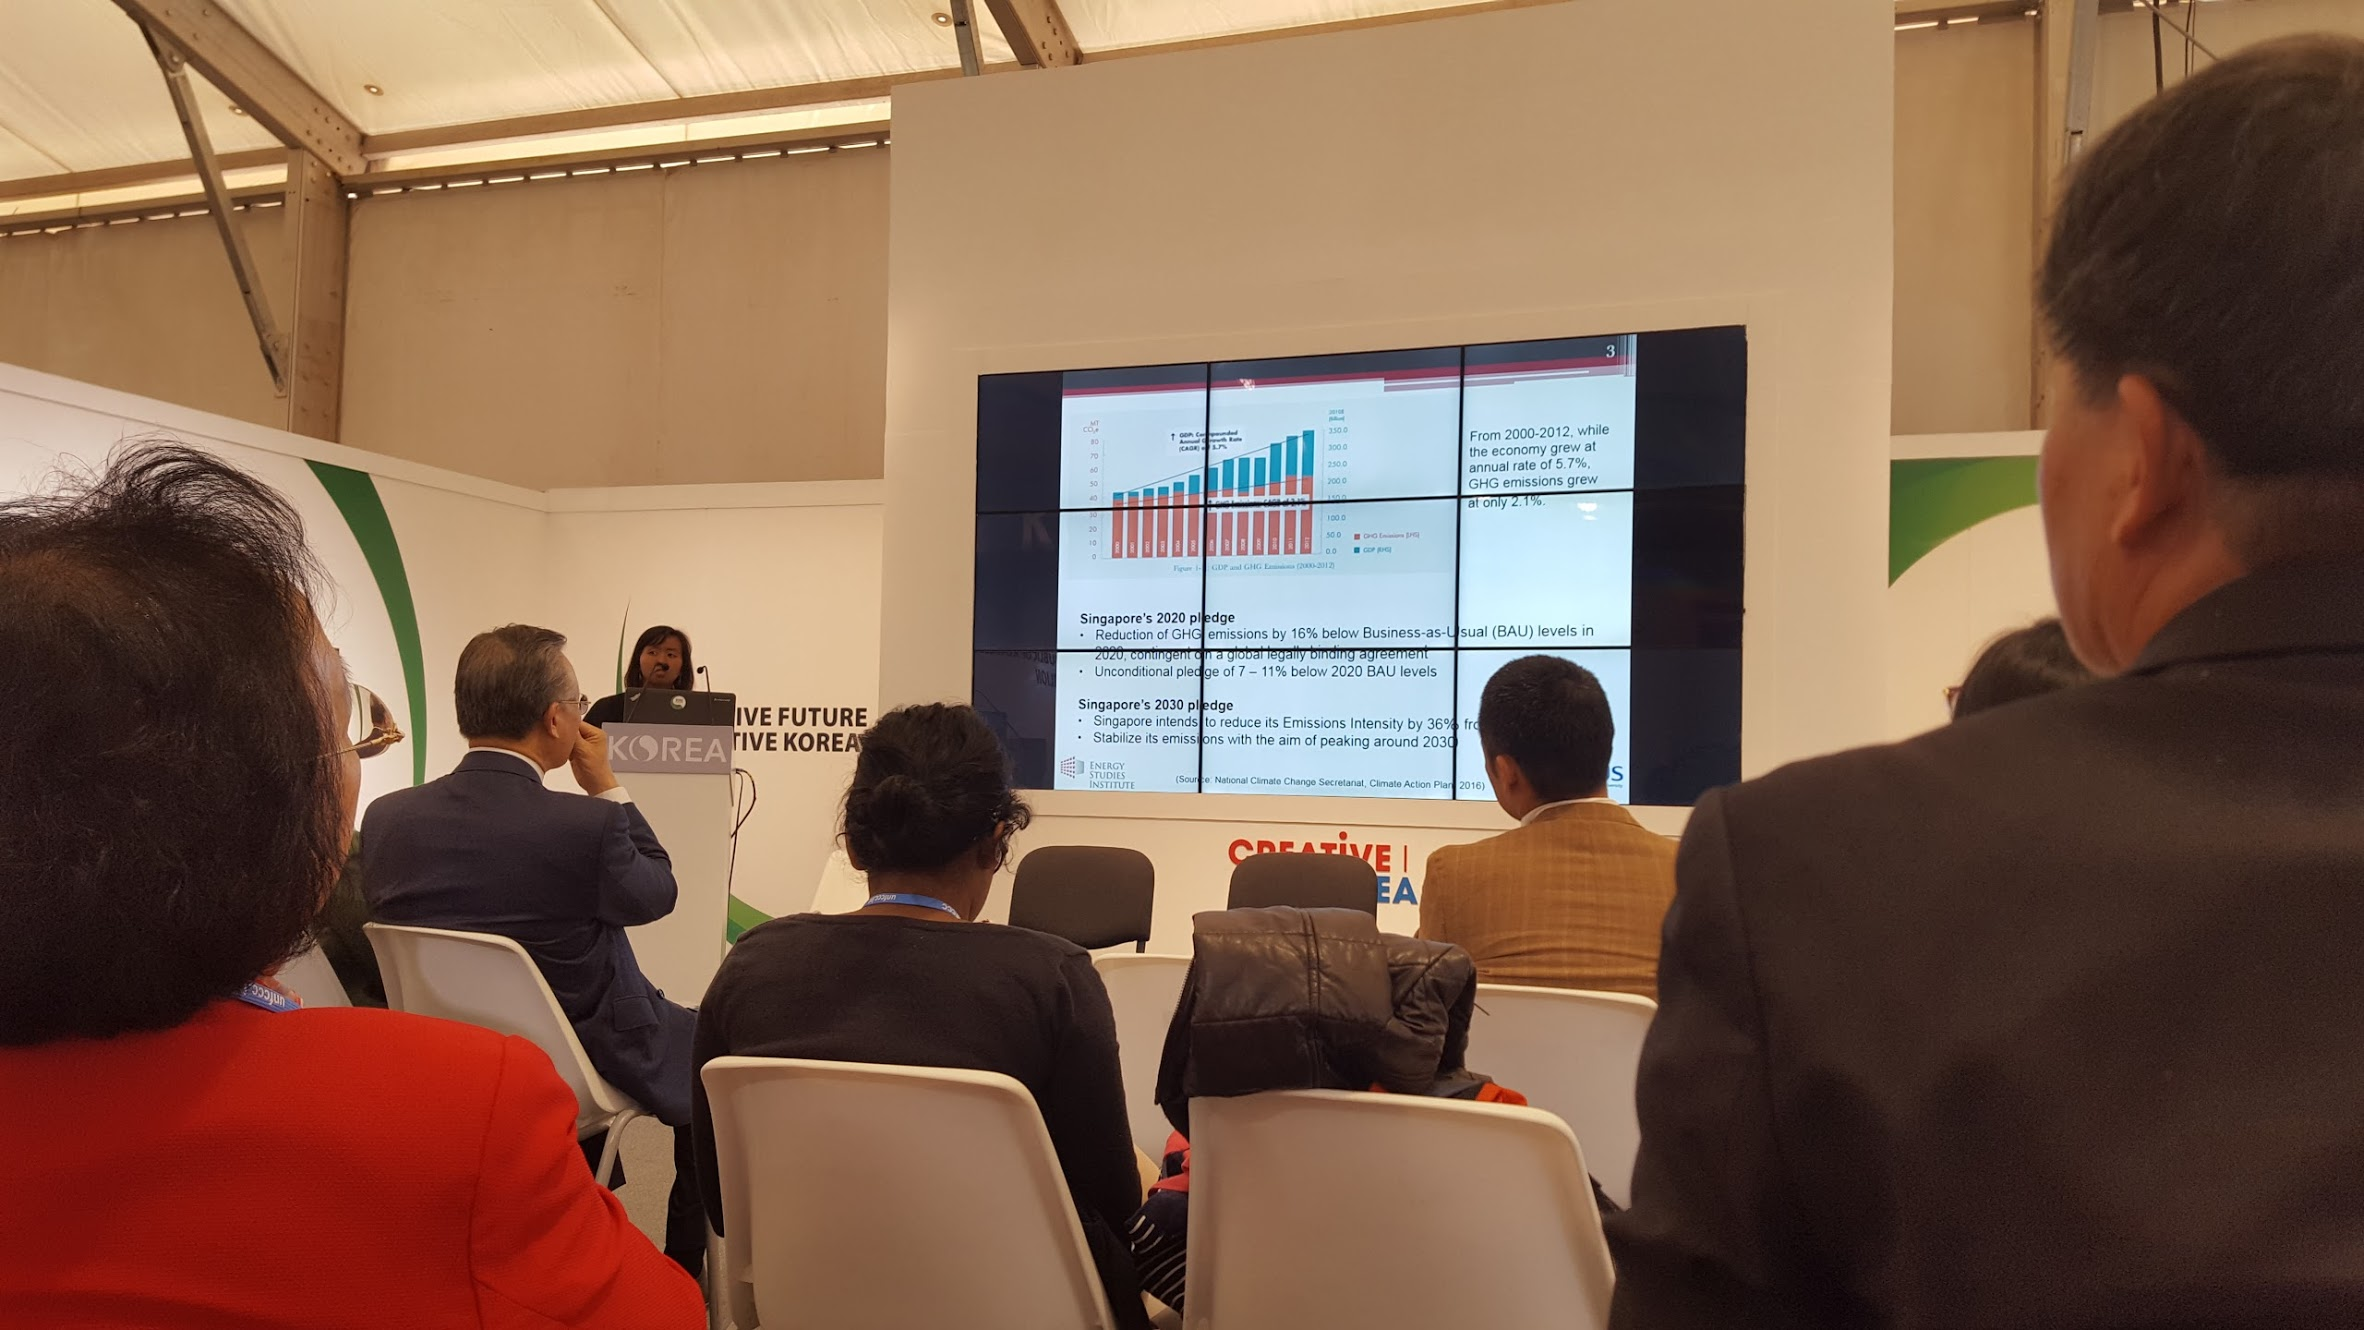 An event held at the Korea pavilion by Listrina Hamid, a participant from Singapore, focusing on the city-state's moves to combat climate change.